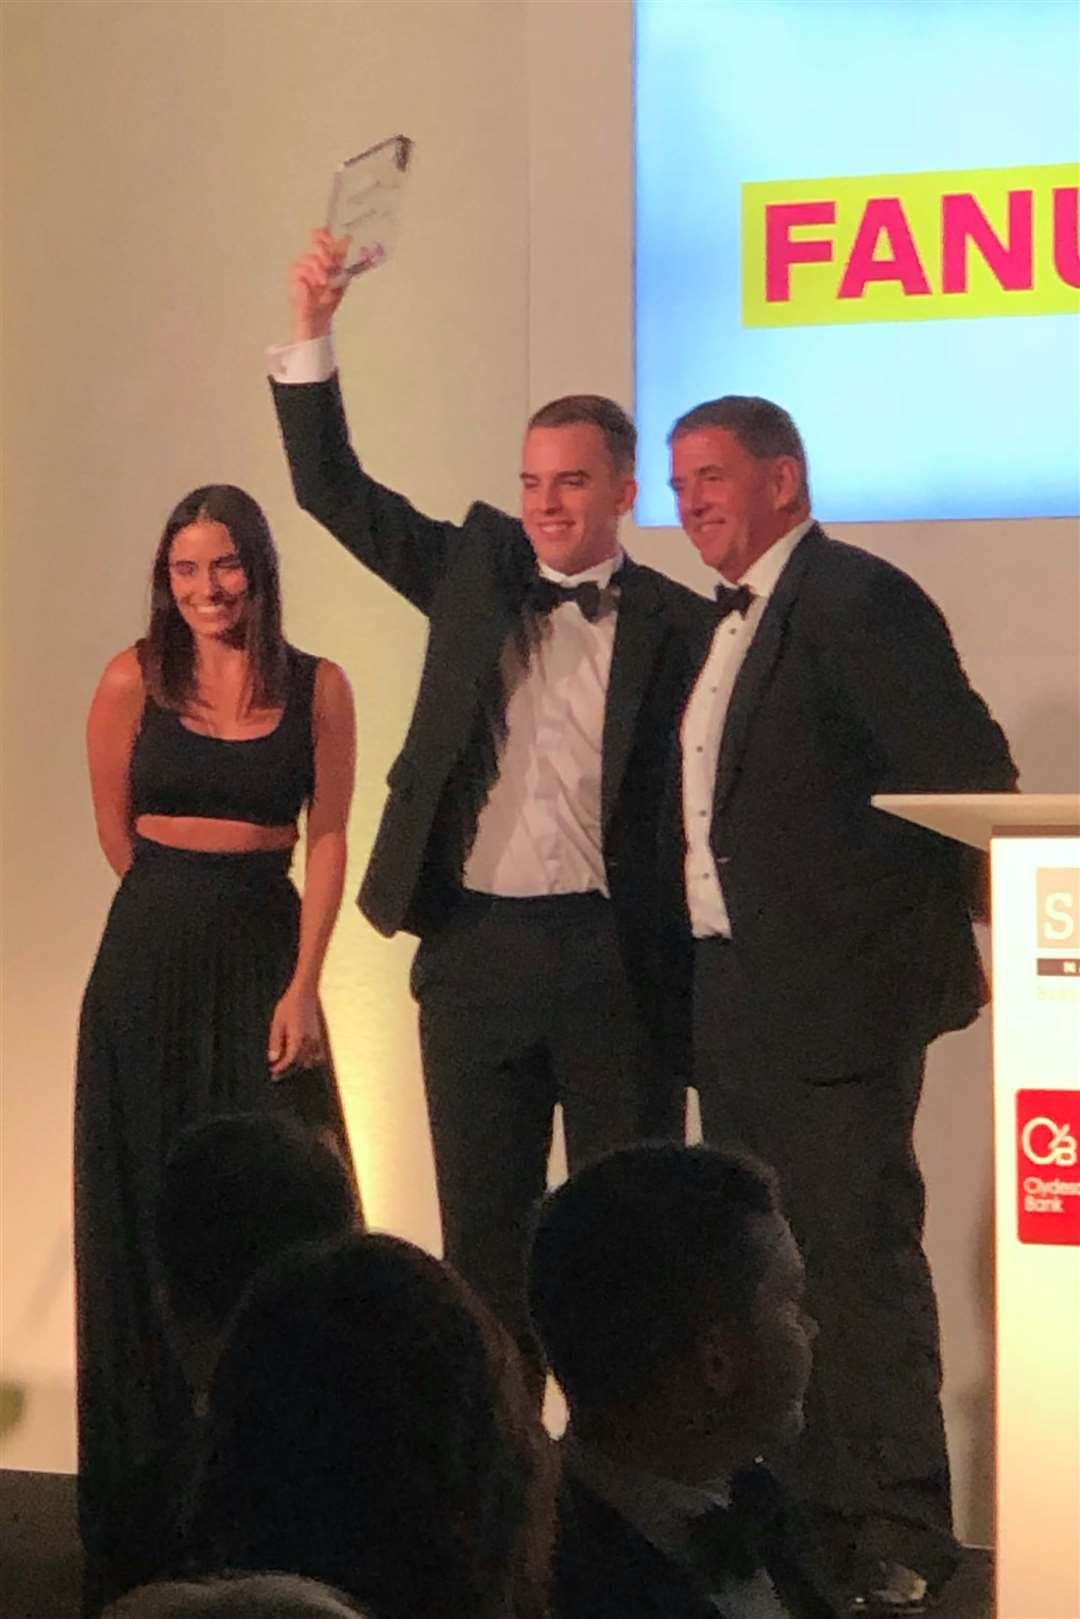 Daniel Lynch was named Apprentice of the Year. (5889466)